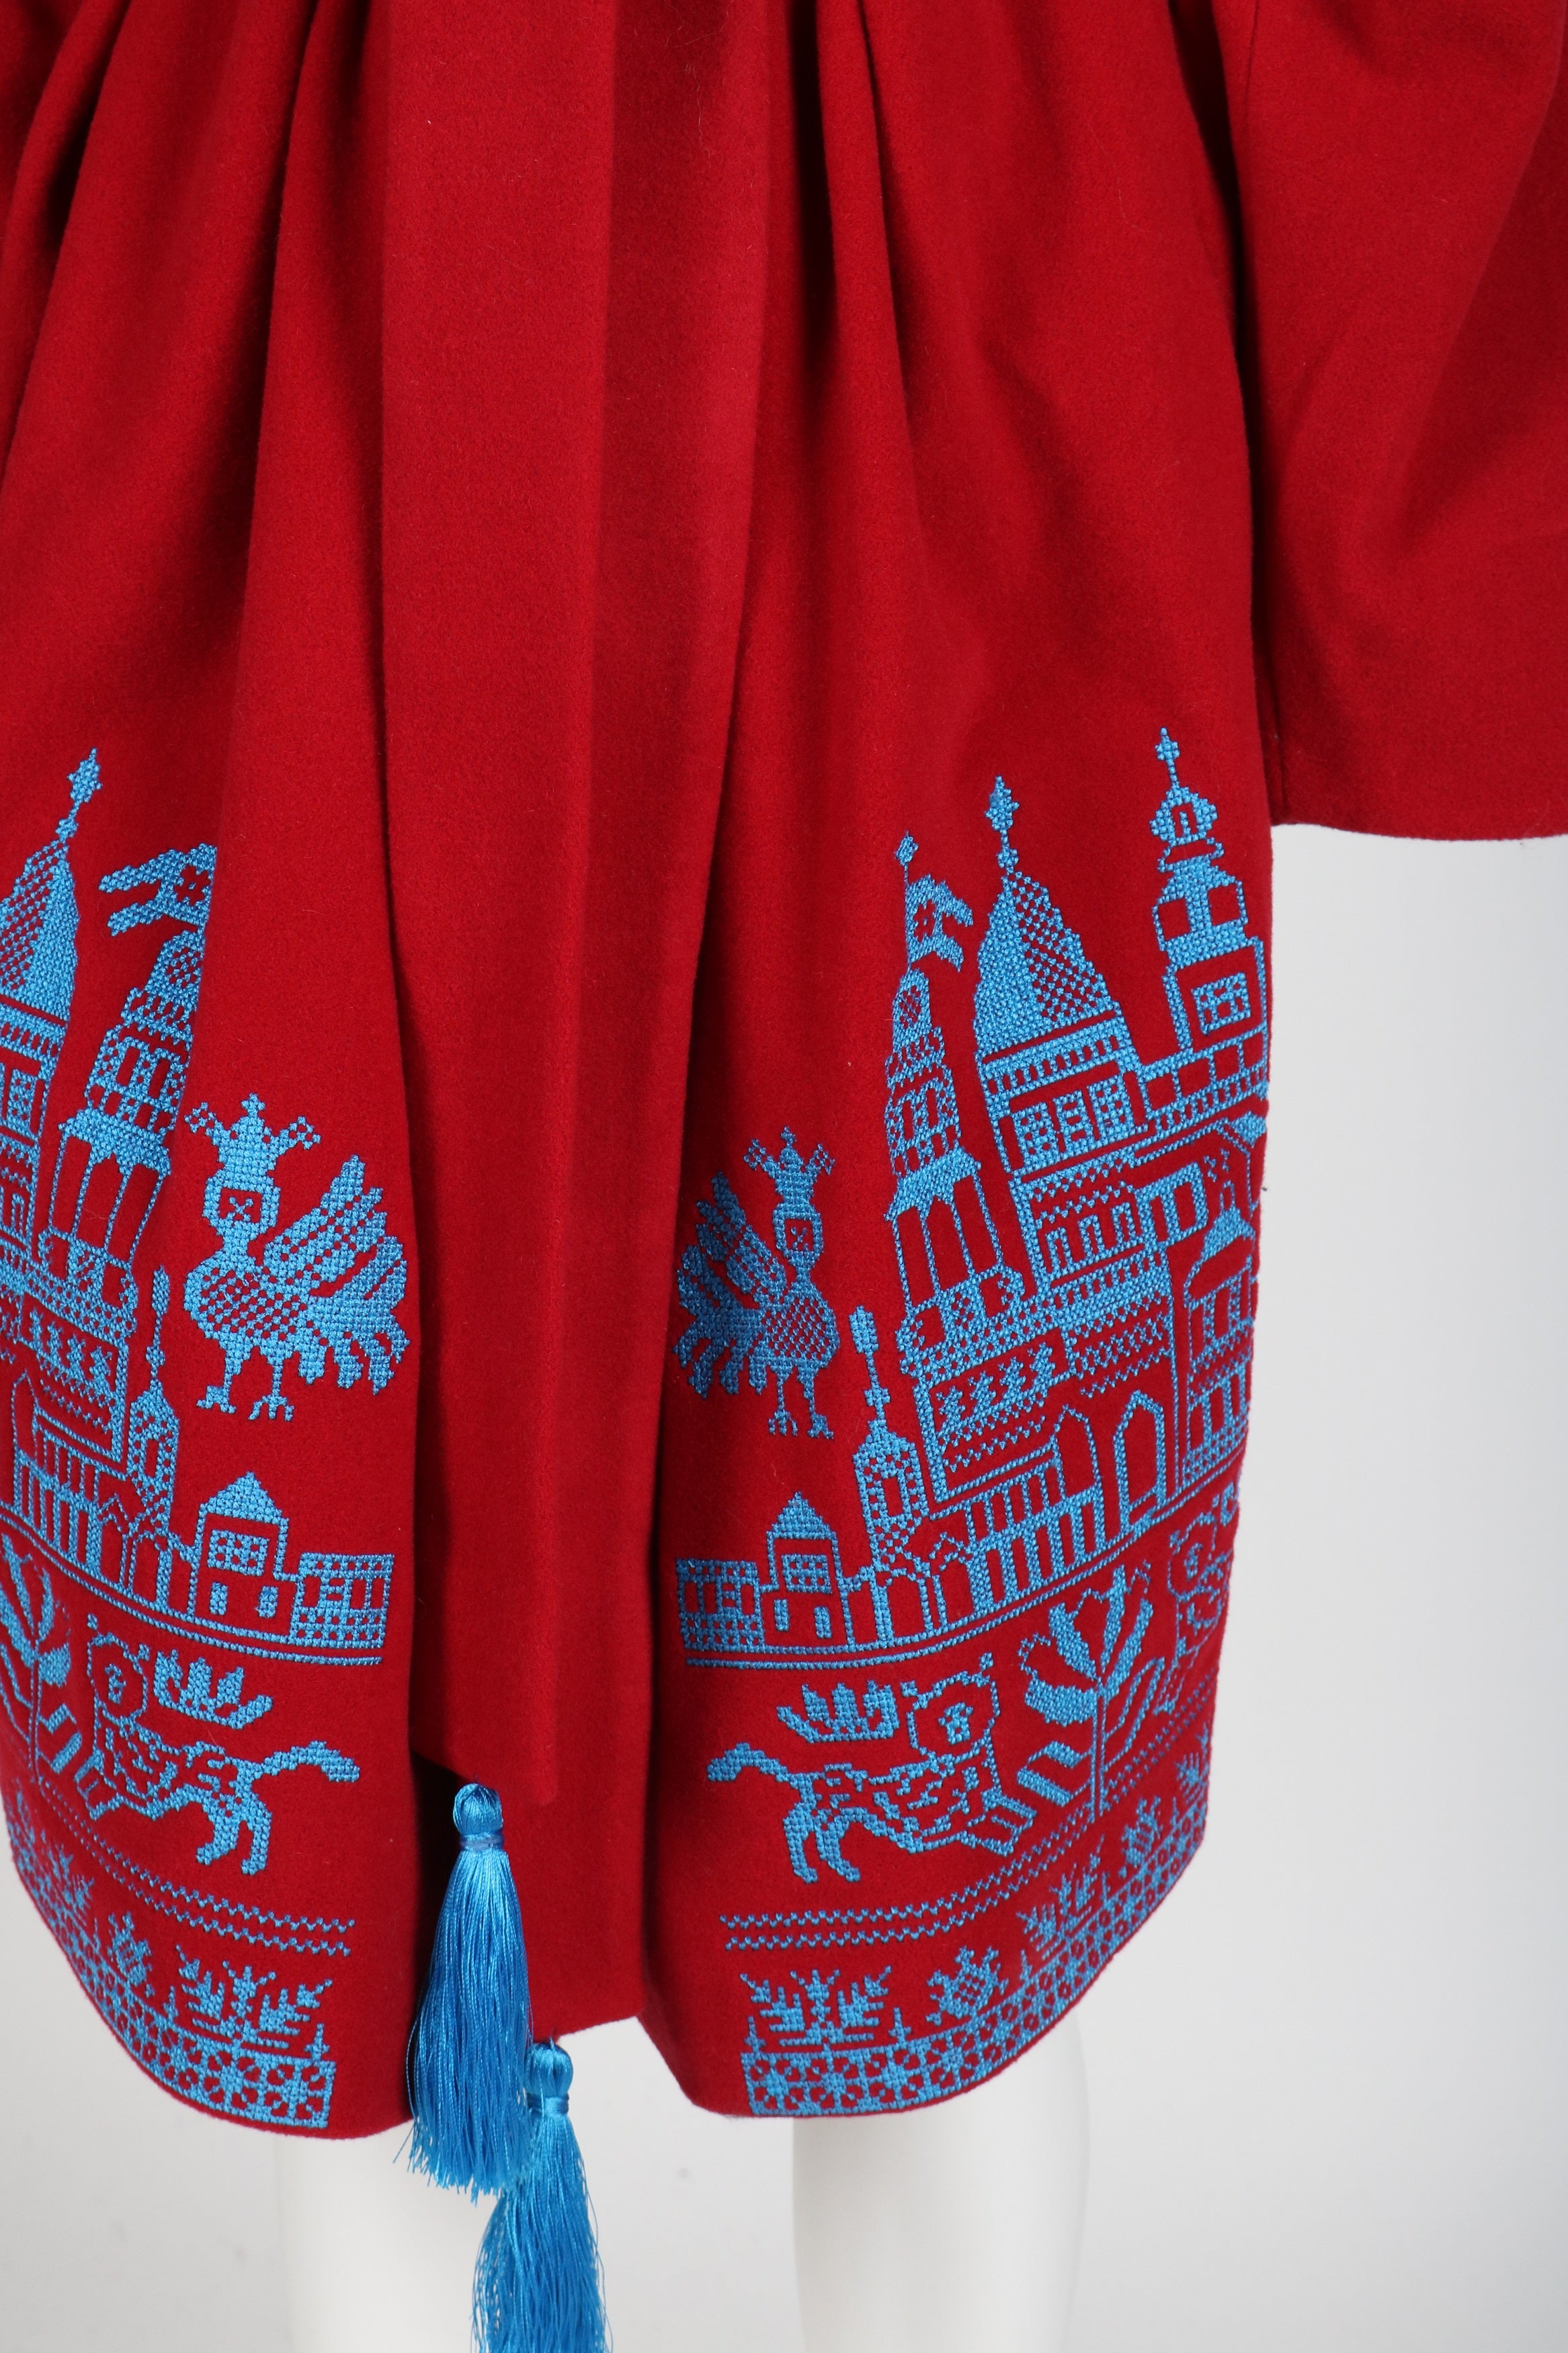 Fanm Mon DIVIN Vyshyvanka Red Wool Blue Embroidered City Life Theme Coat